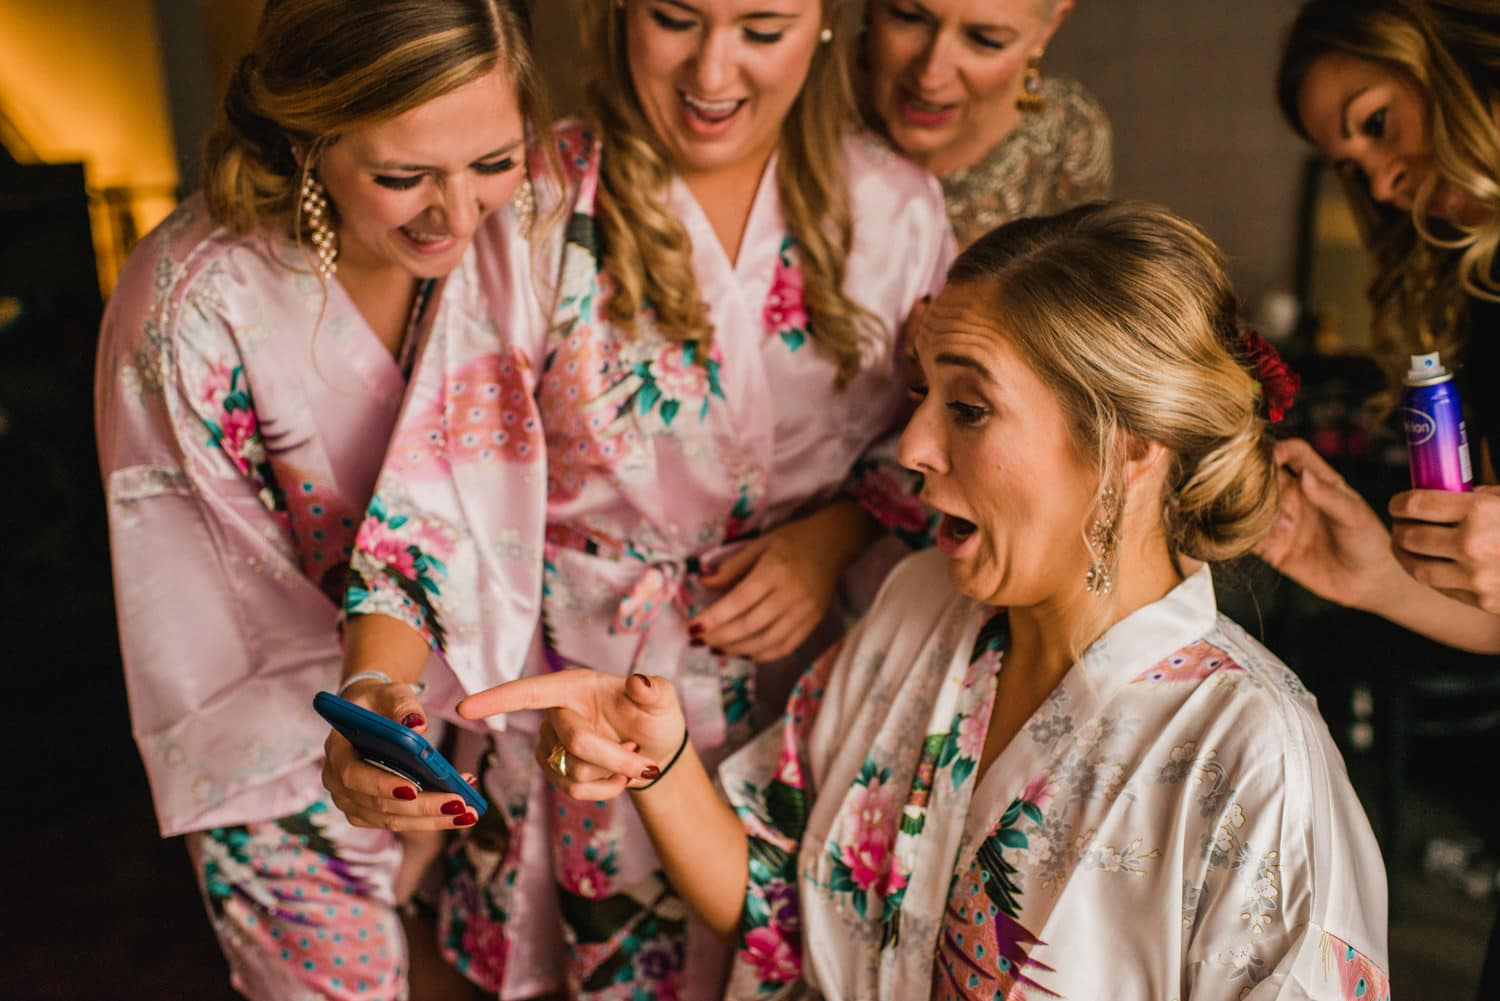 bride laughing at photo on phone